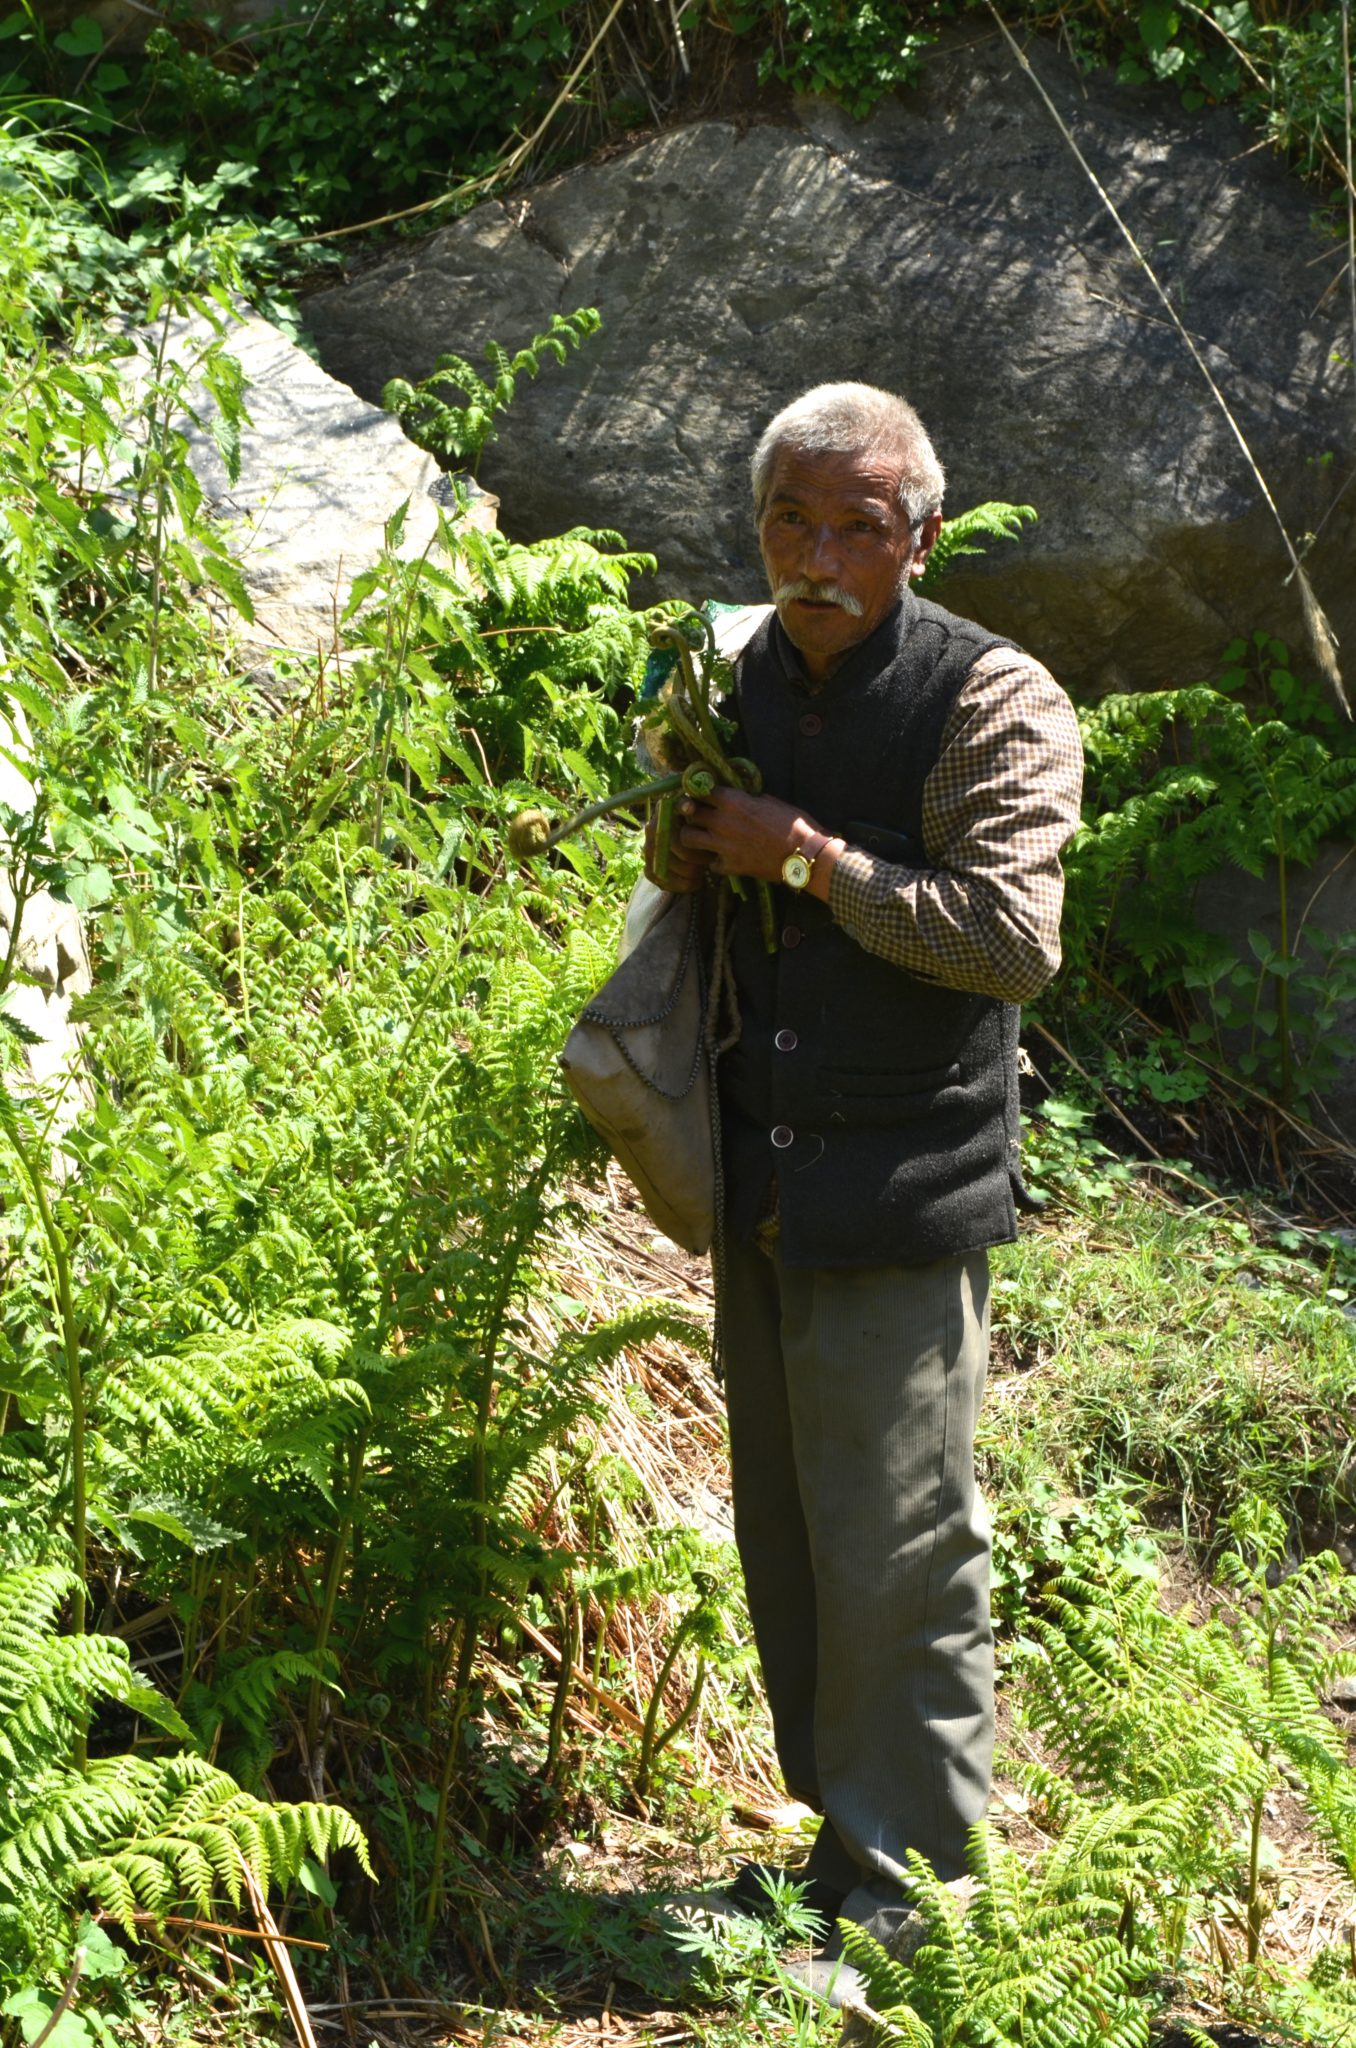 Images of men and women growing and collecting medicinal plants